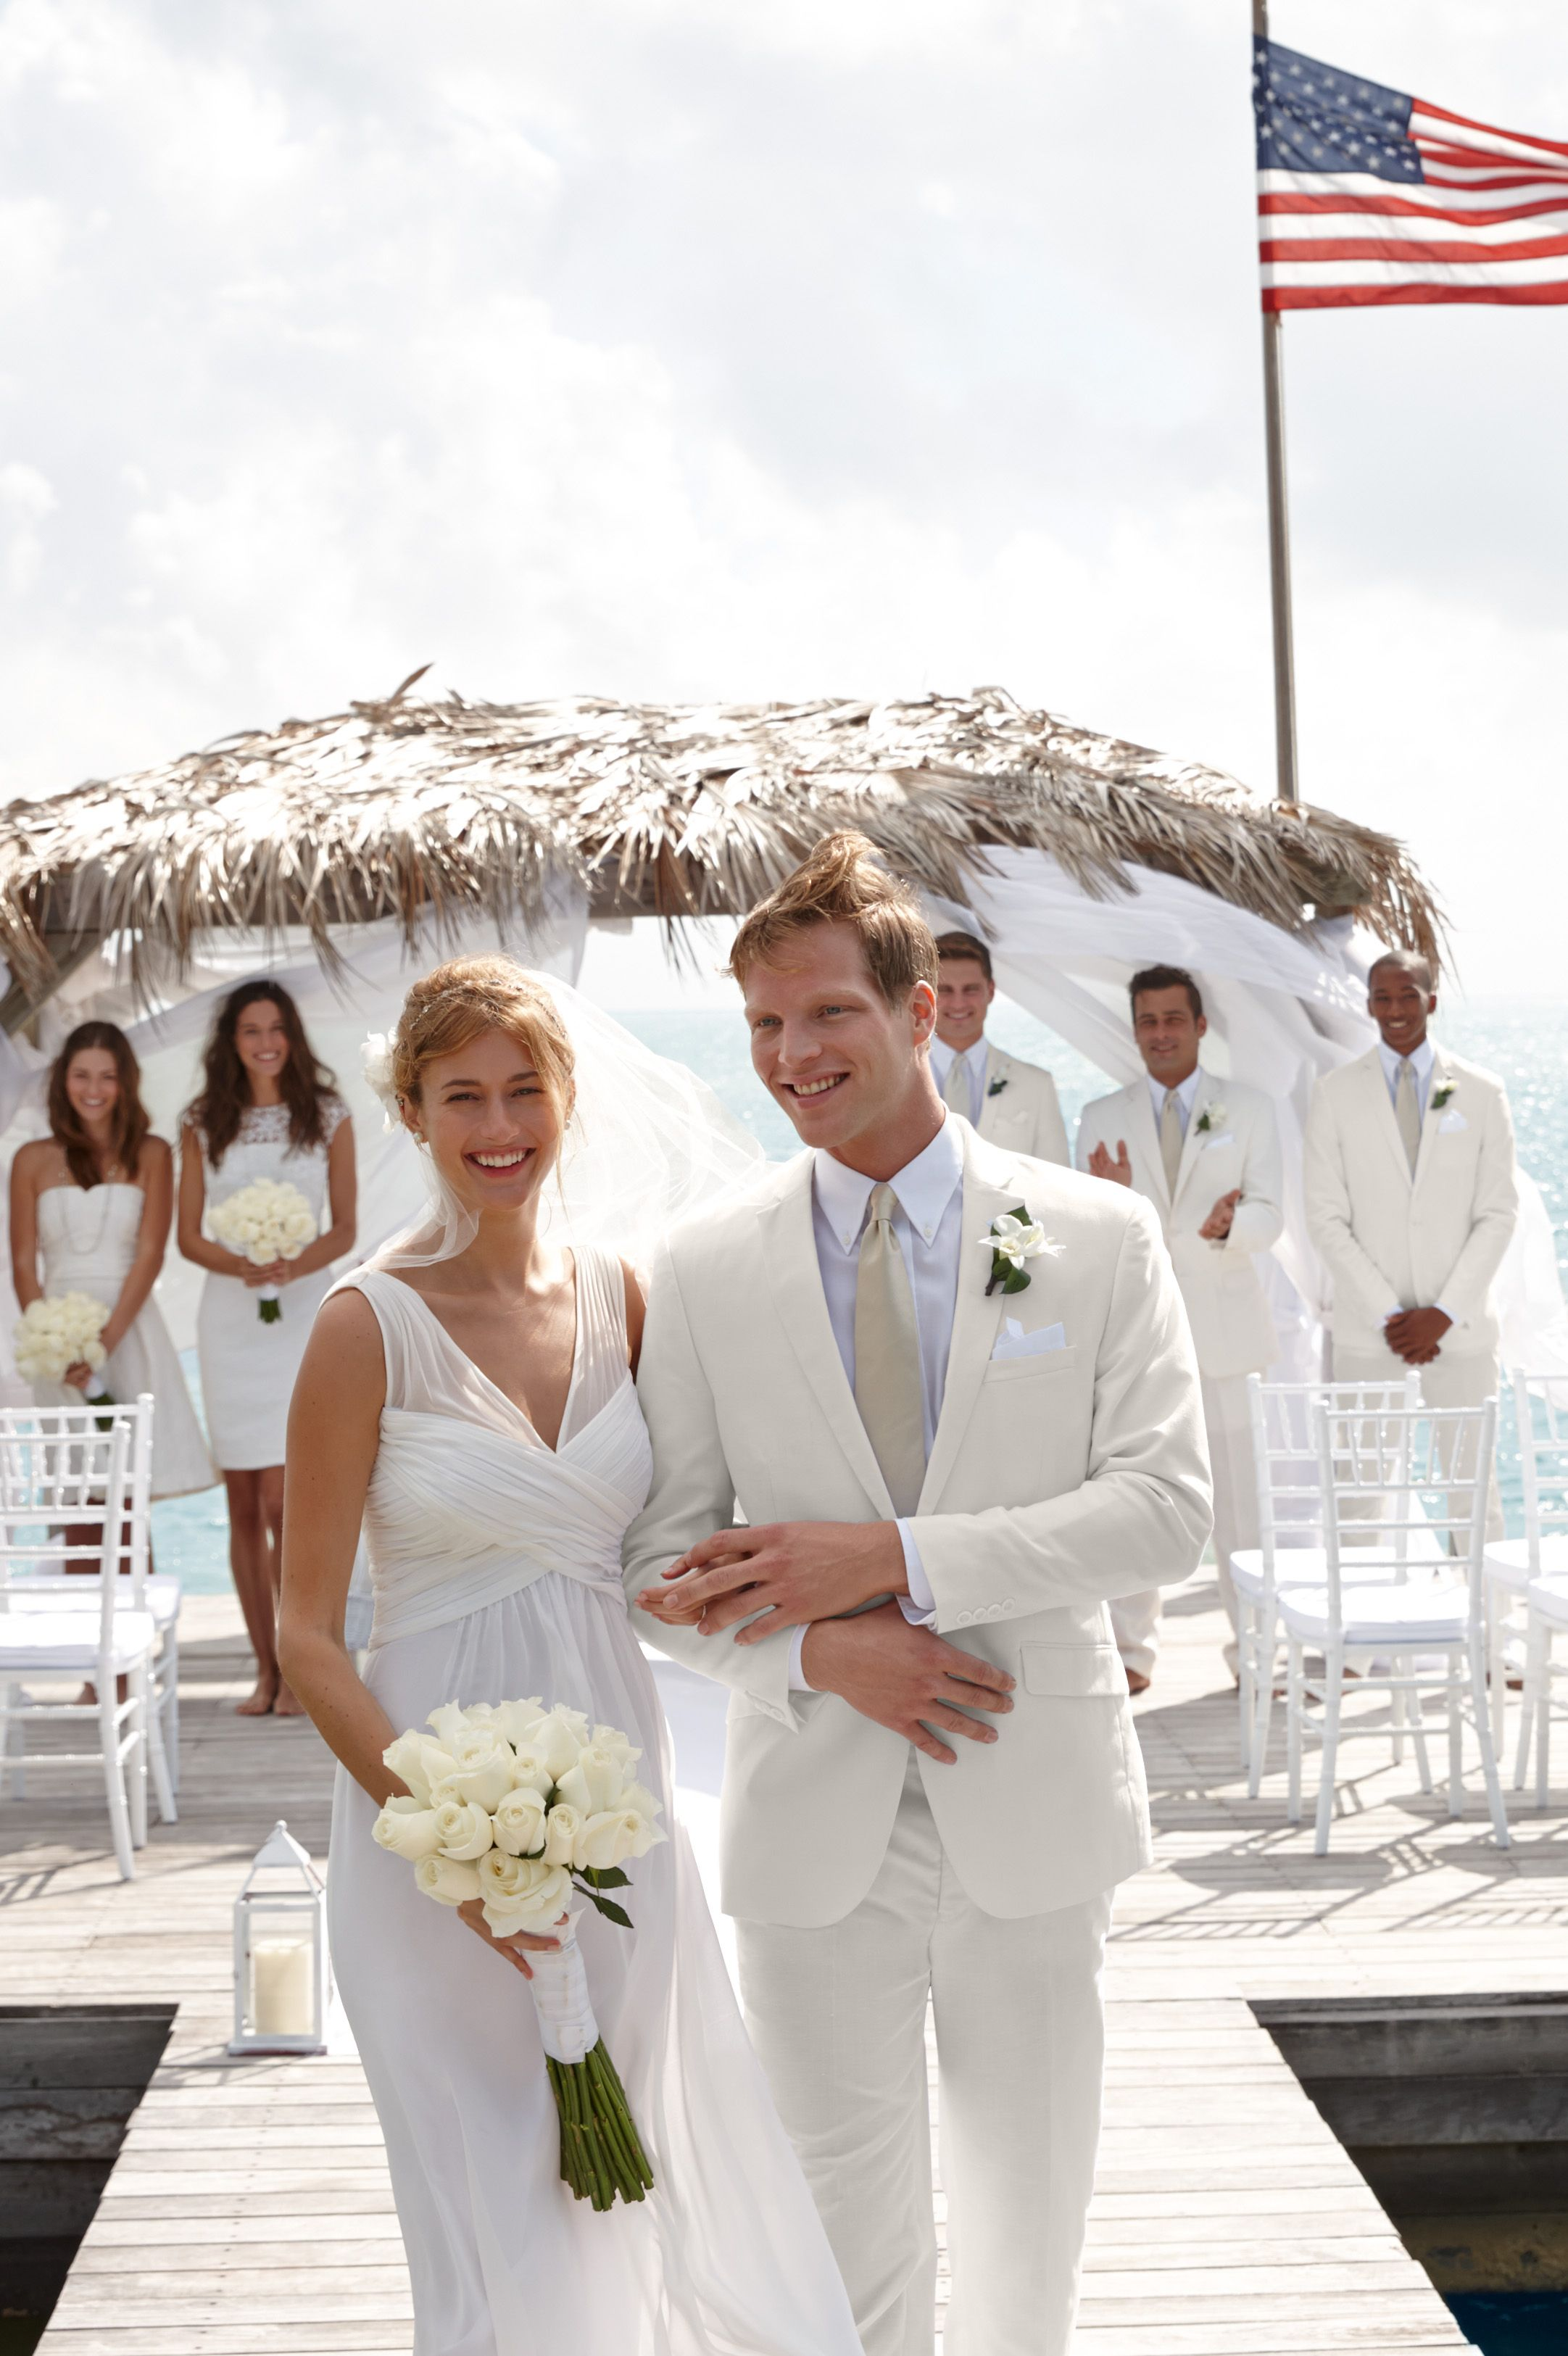 Lauren Ralph Lauren Wedding A Beautifully Breezy Wedding Gown Is Most Elegant Surrounded By Sand Sunshine And The Peo Wedding Dream Wedding All White Wedding